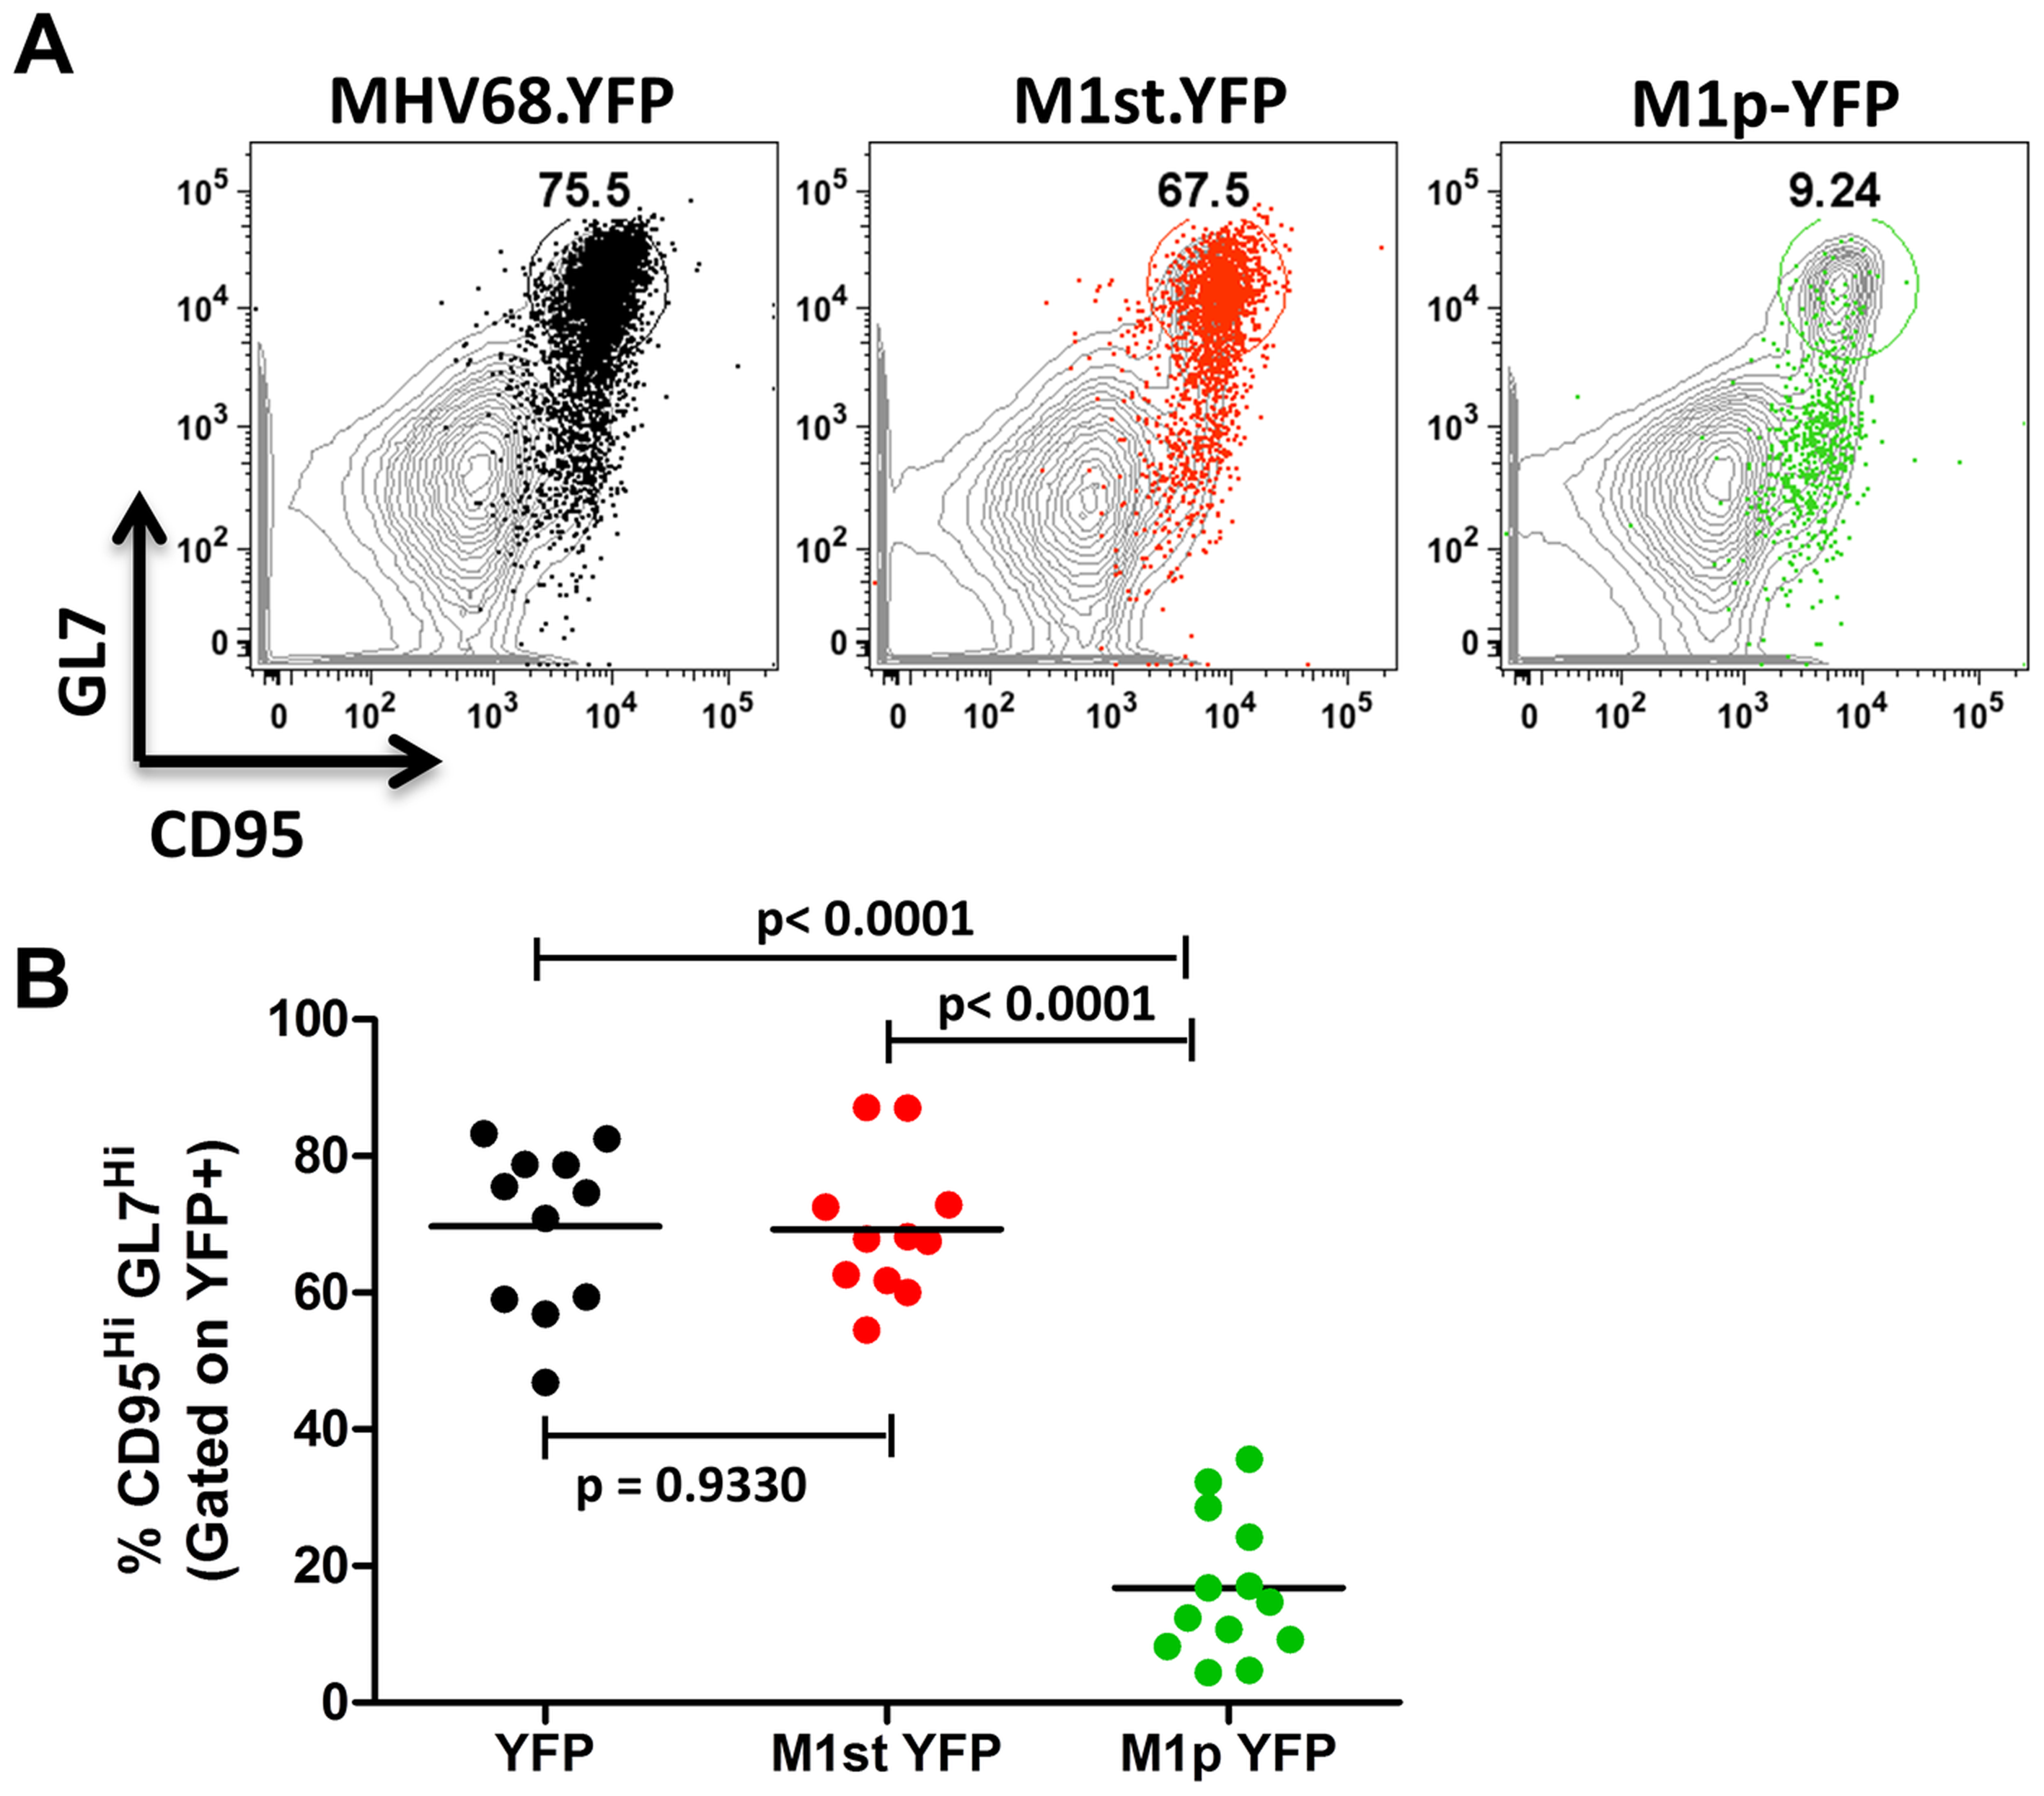 Low levels of M1 promoter activity are detected in germinal center B cells.